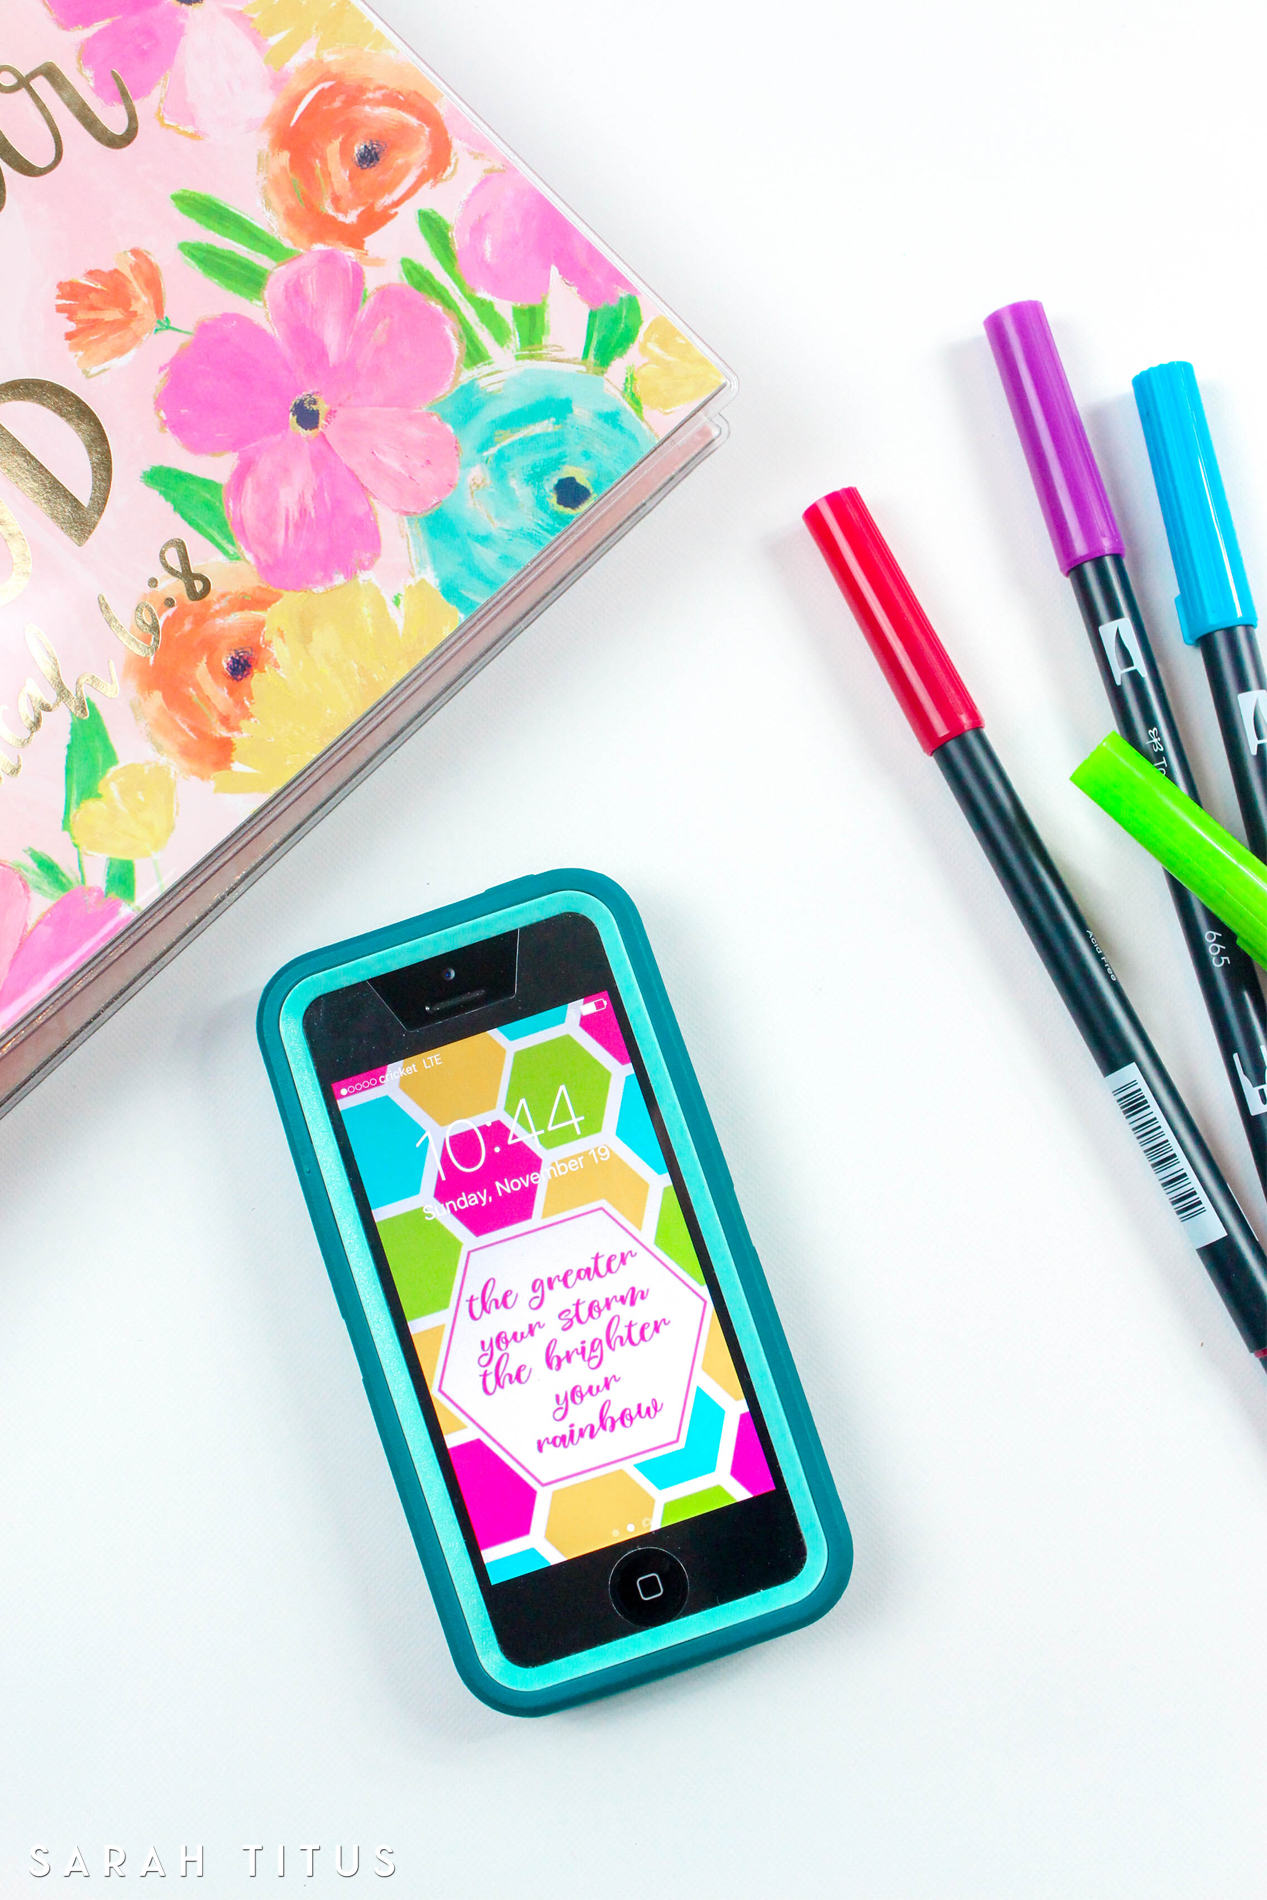 If you like big, bold colors, these free phone wallpapers including inspirational and motivational quotes are perfect for you!